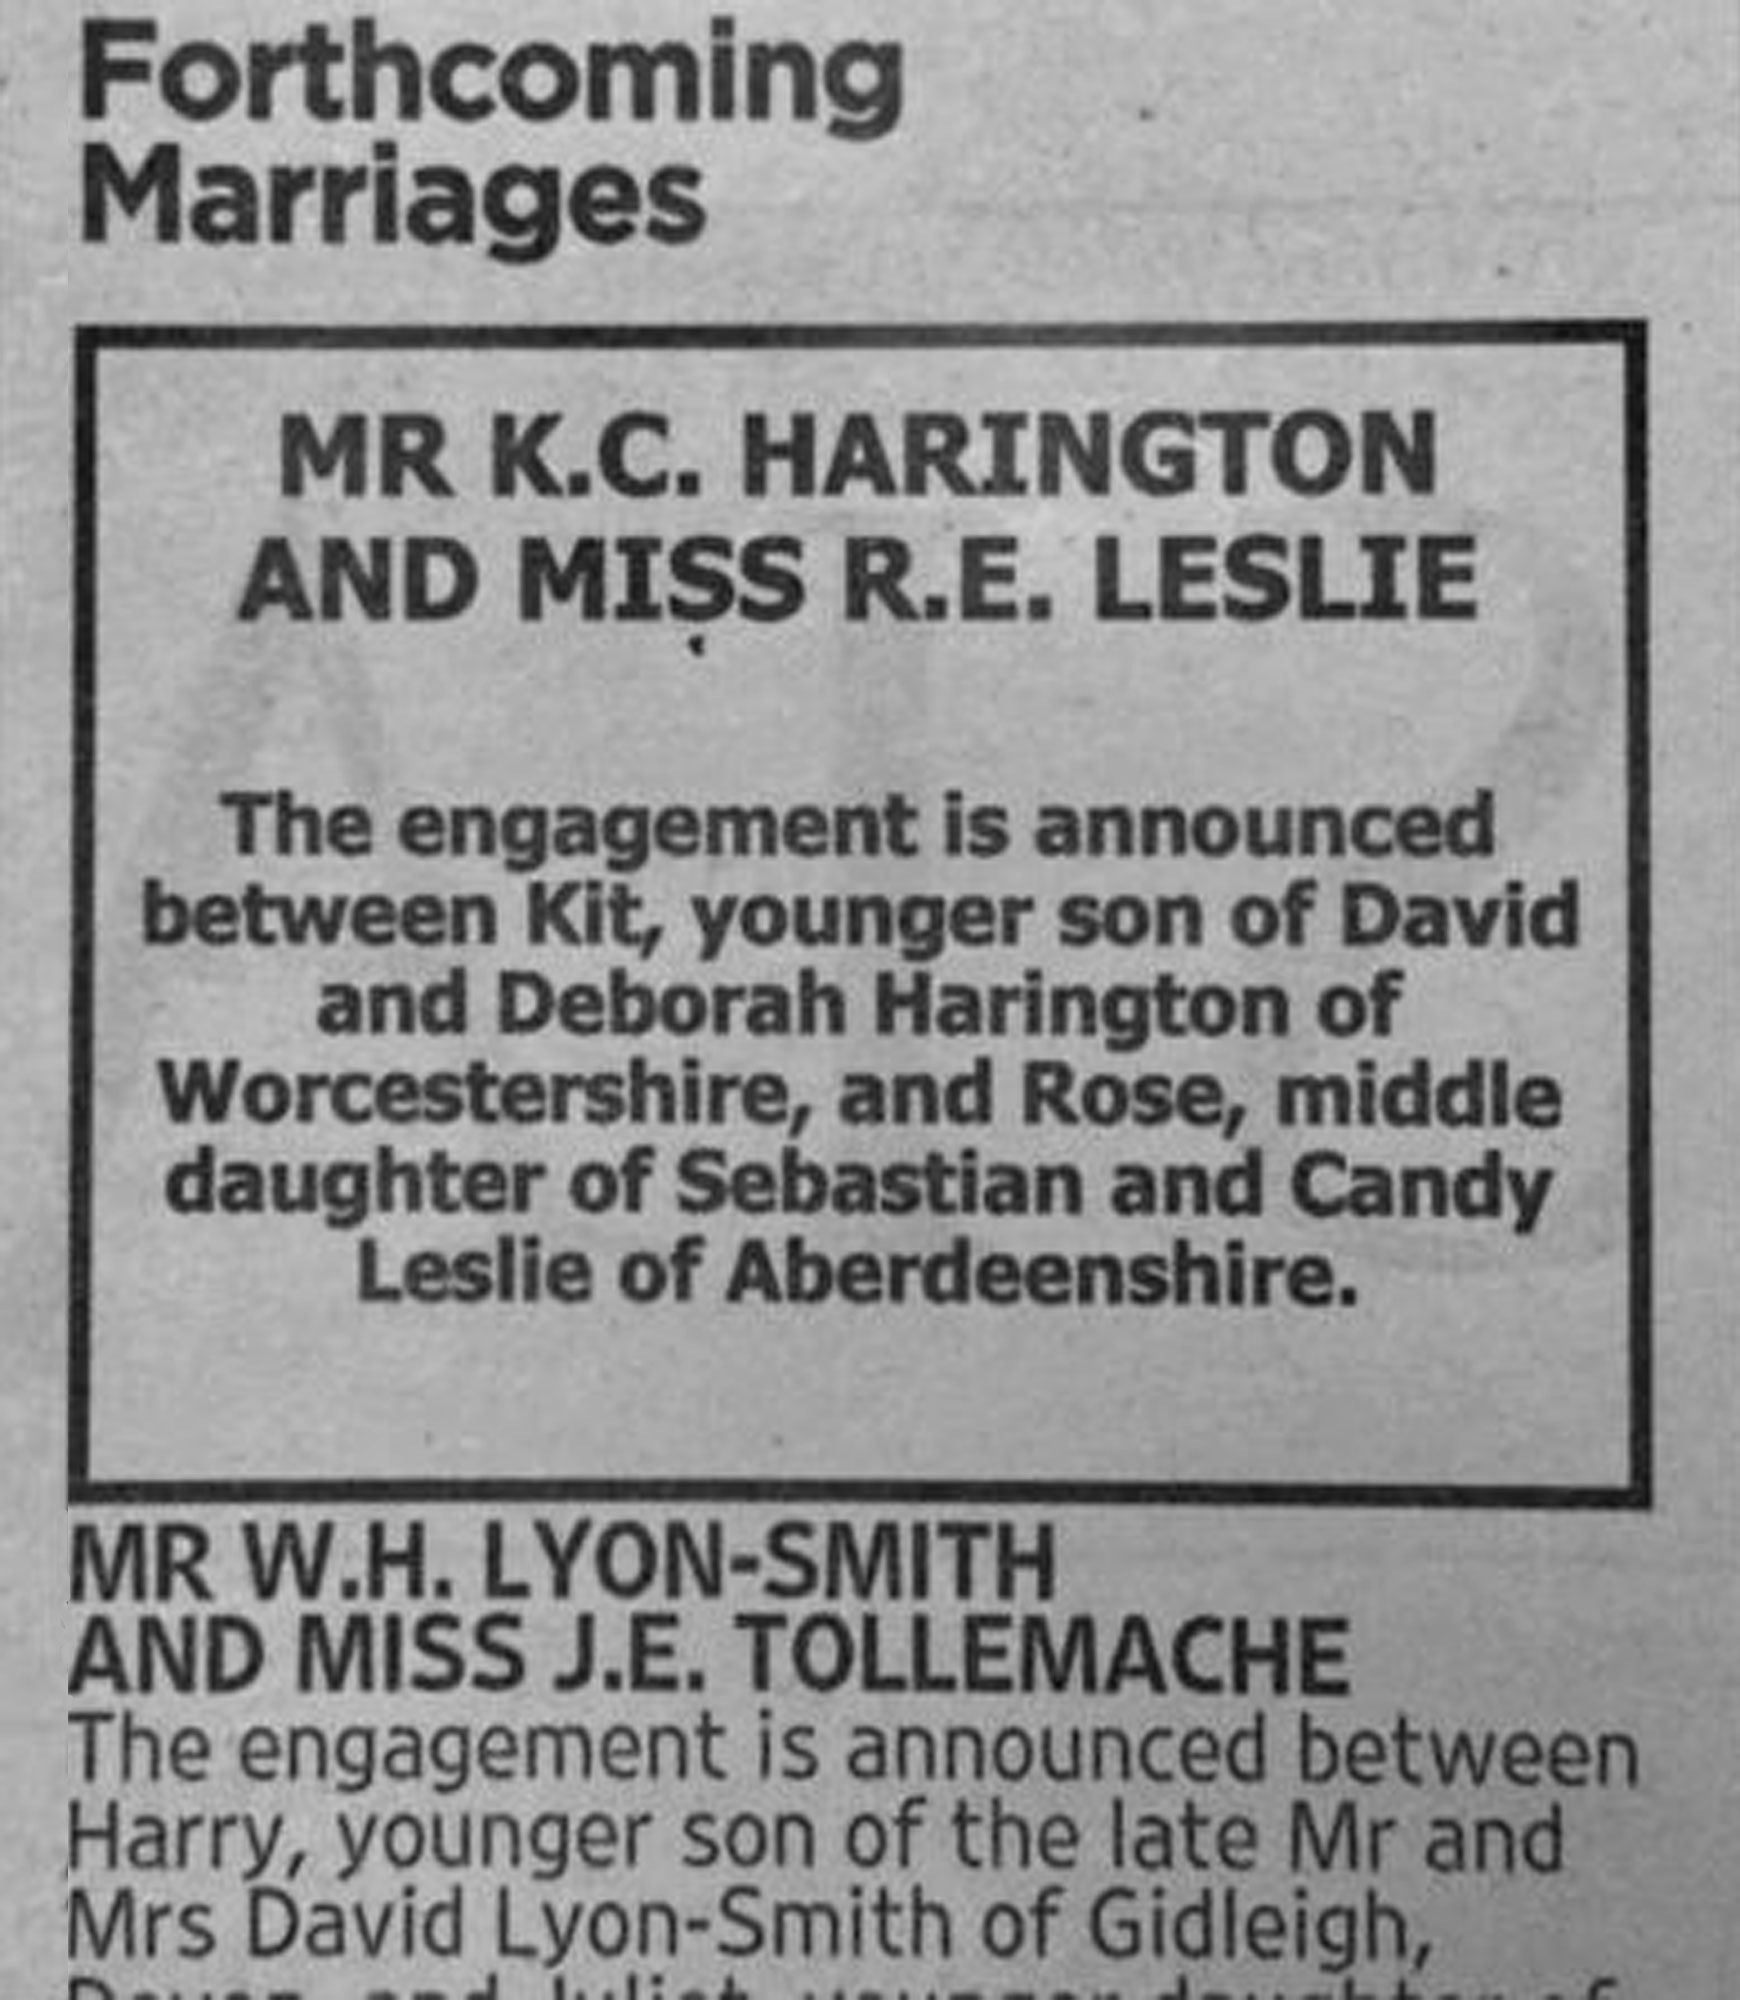 Kit Harington and Rose Leslie's engagement was announced in the Times newspaper